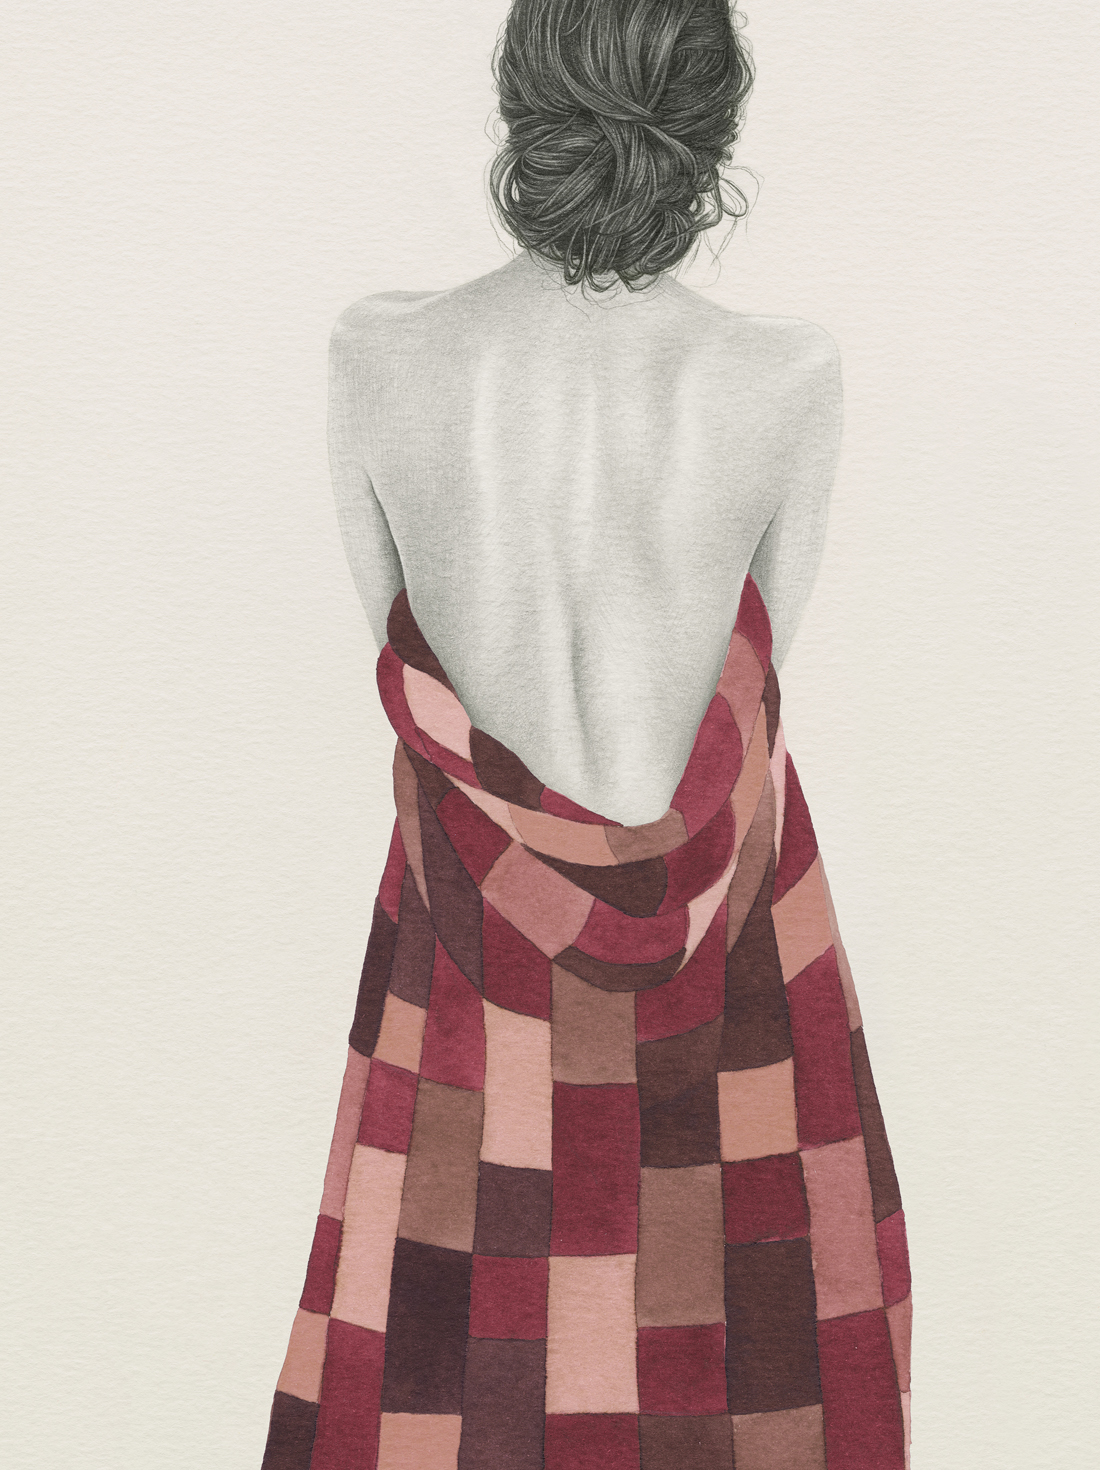 HELENA FRANK - Red Patchwork